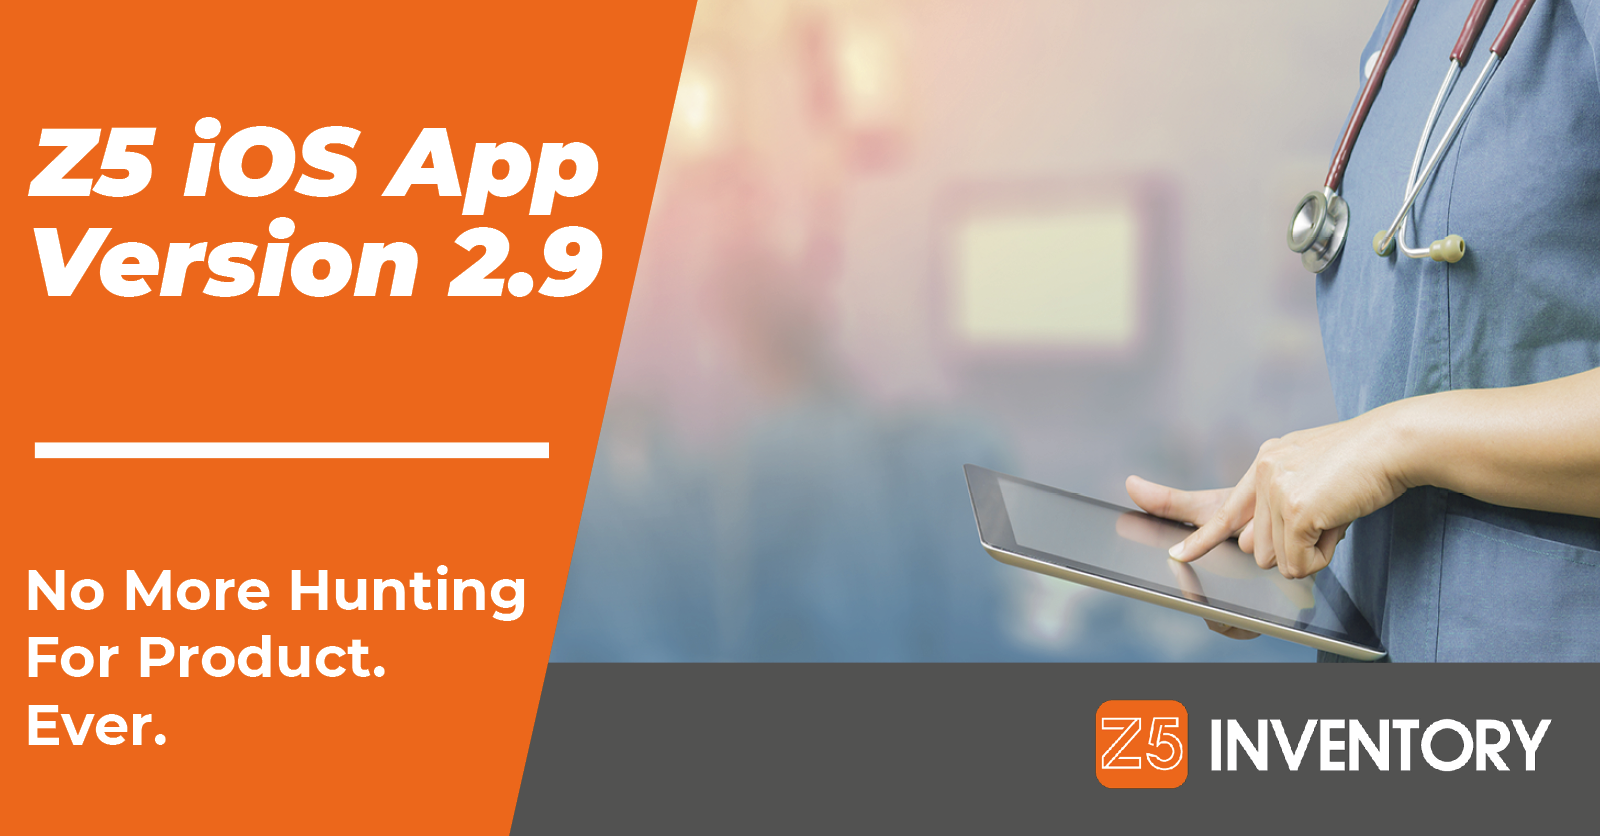 A Clinician Uses the Newest Version of the Z5 Inventory app.